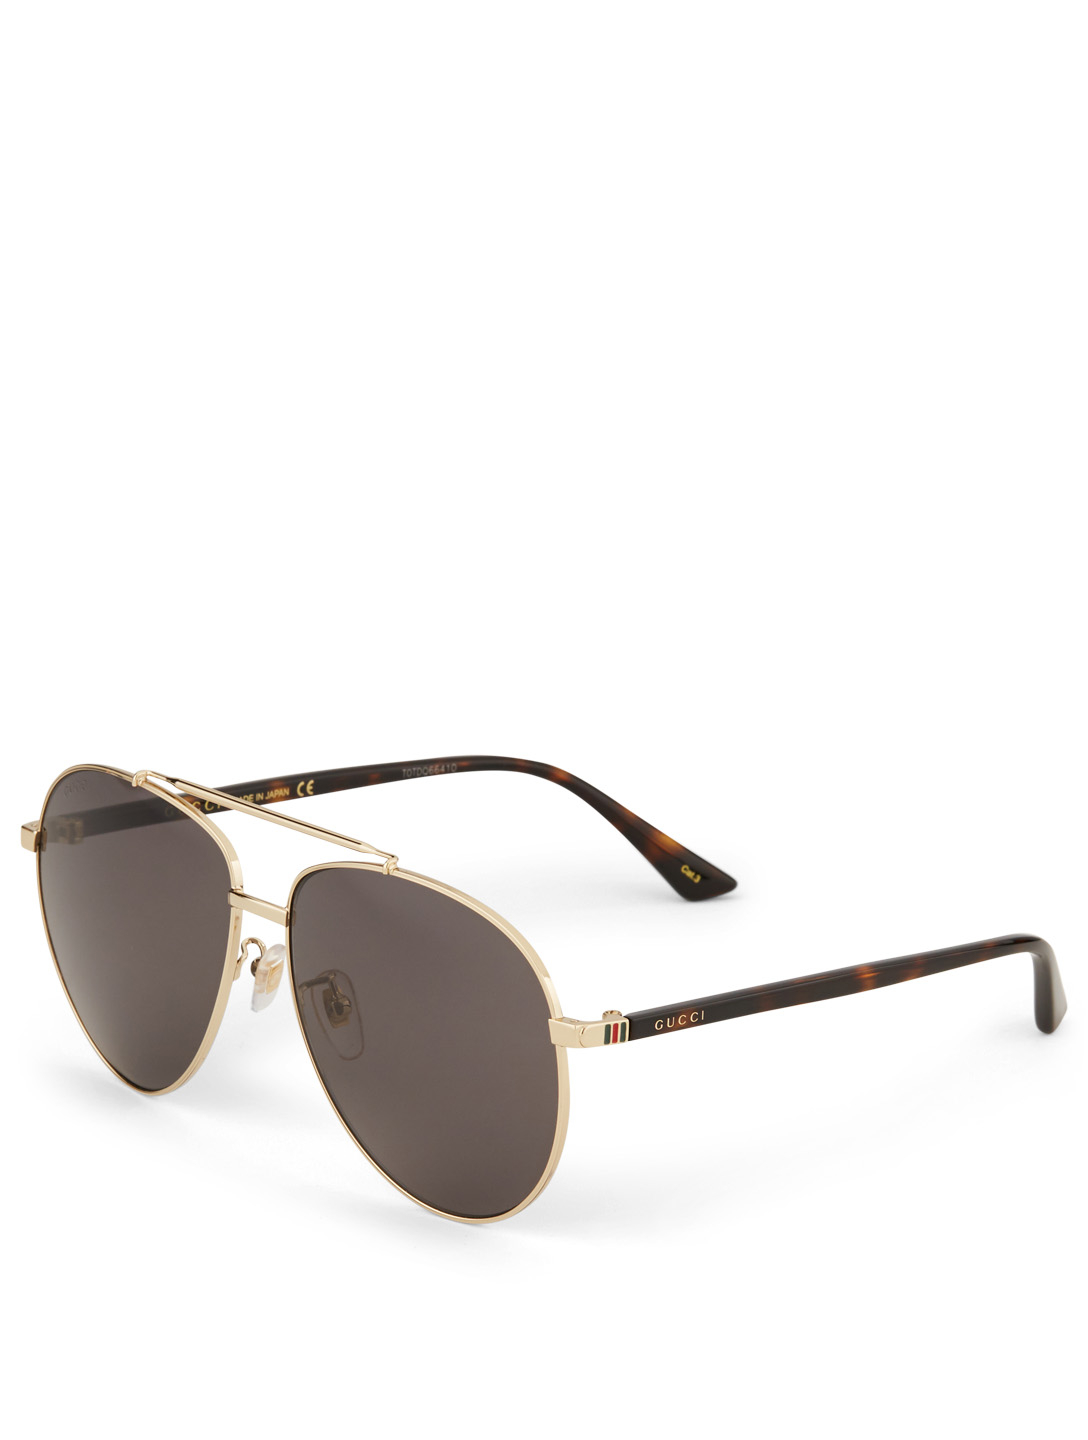 GUCCI Aviator Sunglasses Men's Gold